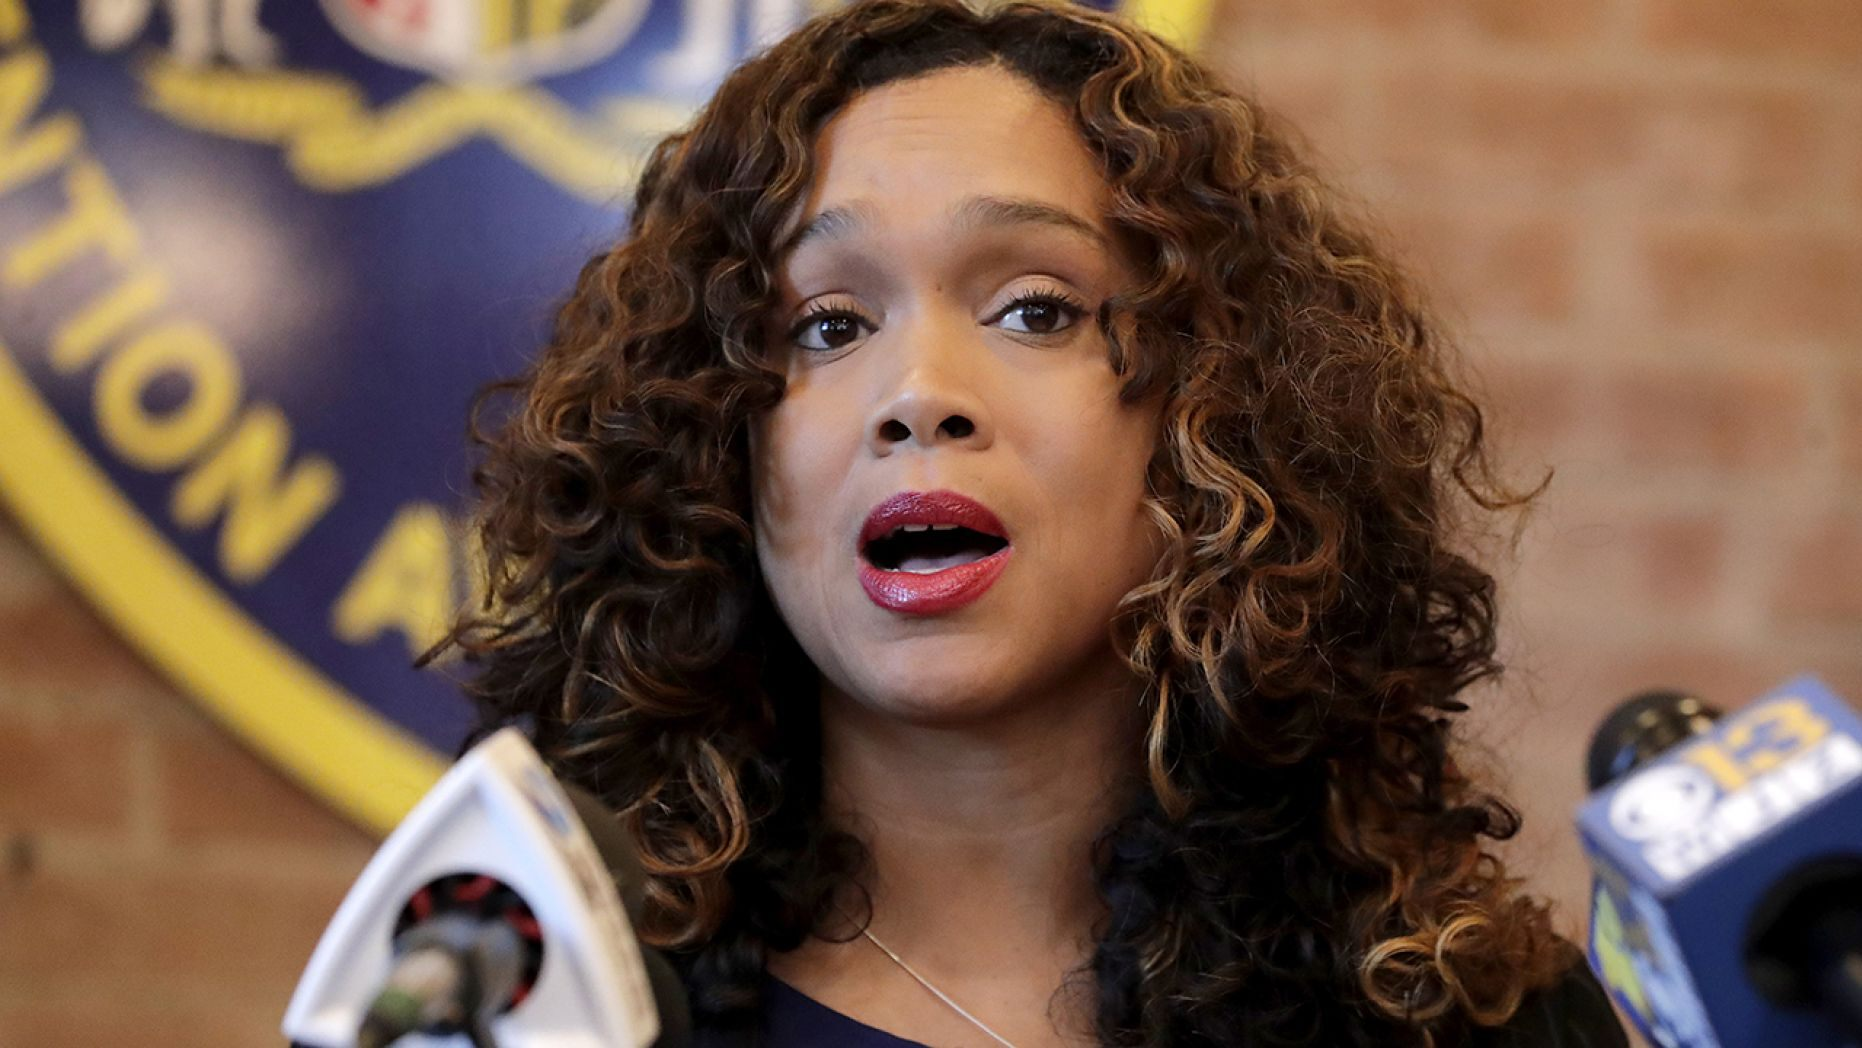 Mosby sent her list to the department in the hopes it will take action, local media reported.